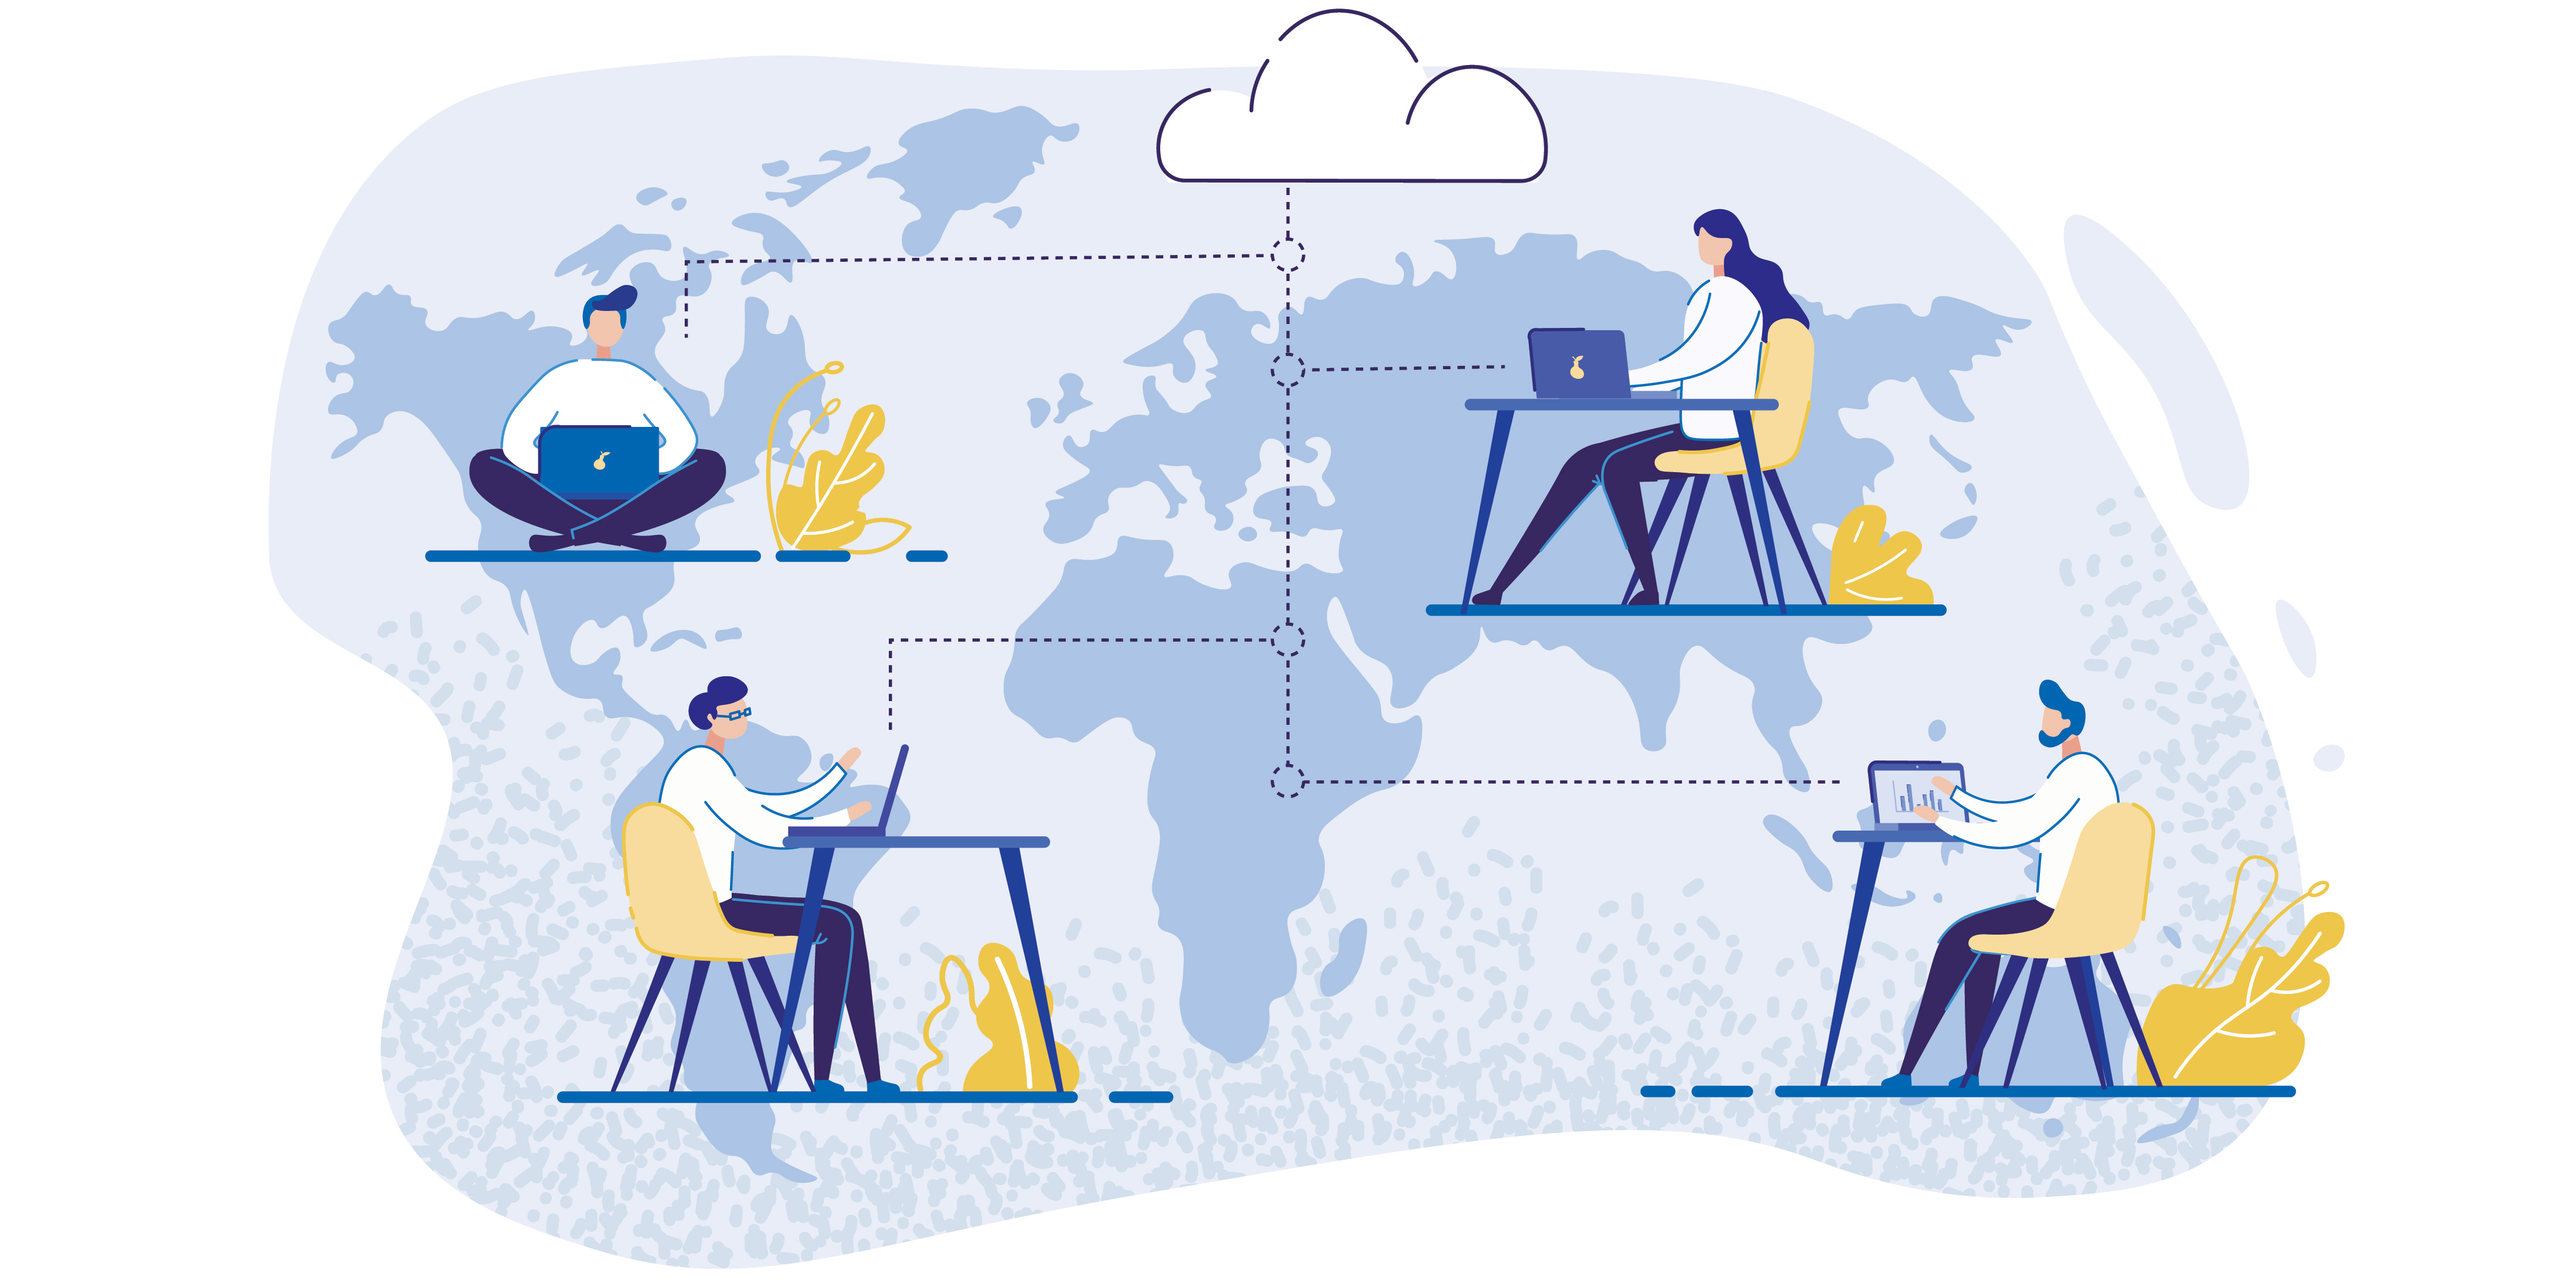 illustration of people working remotely